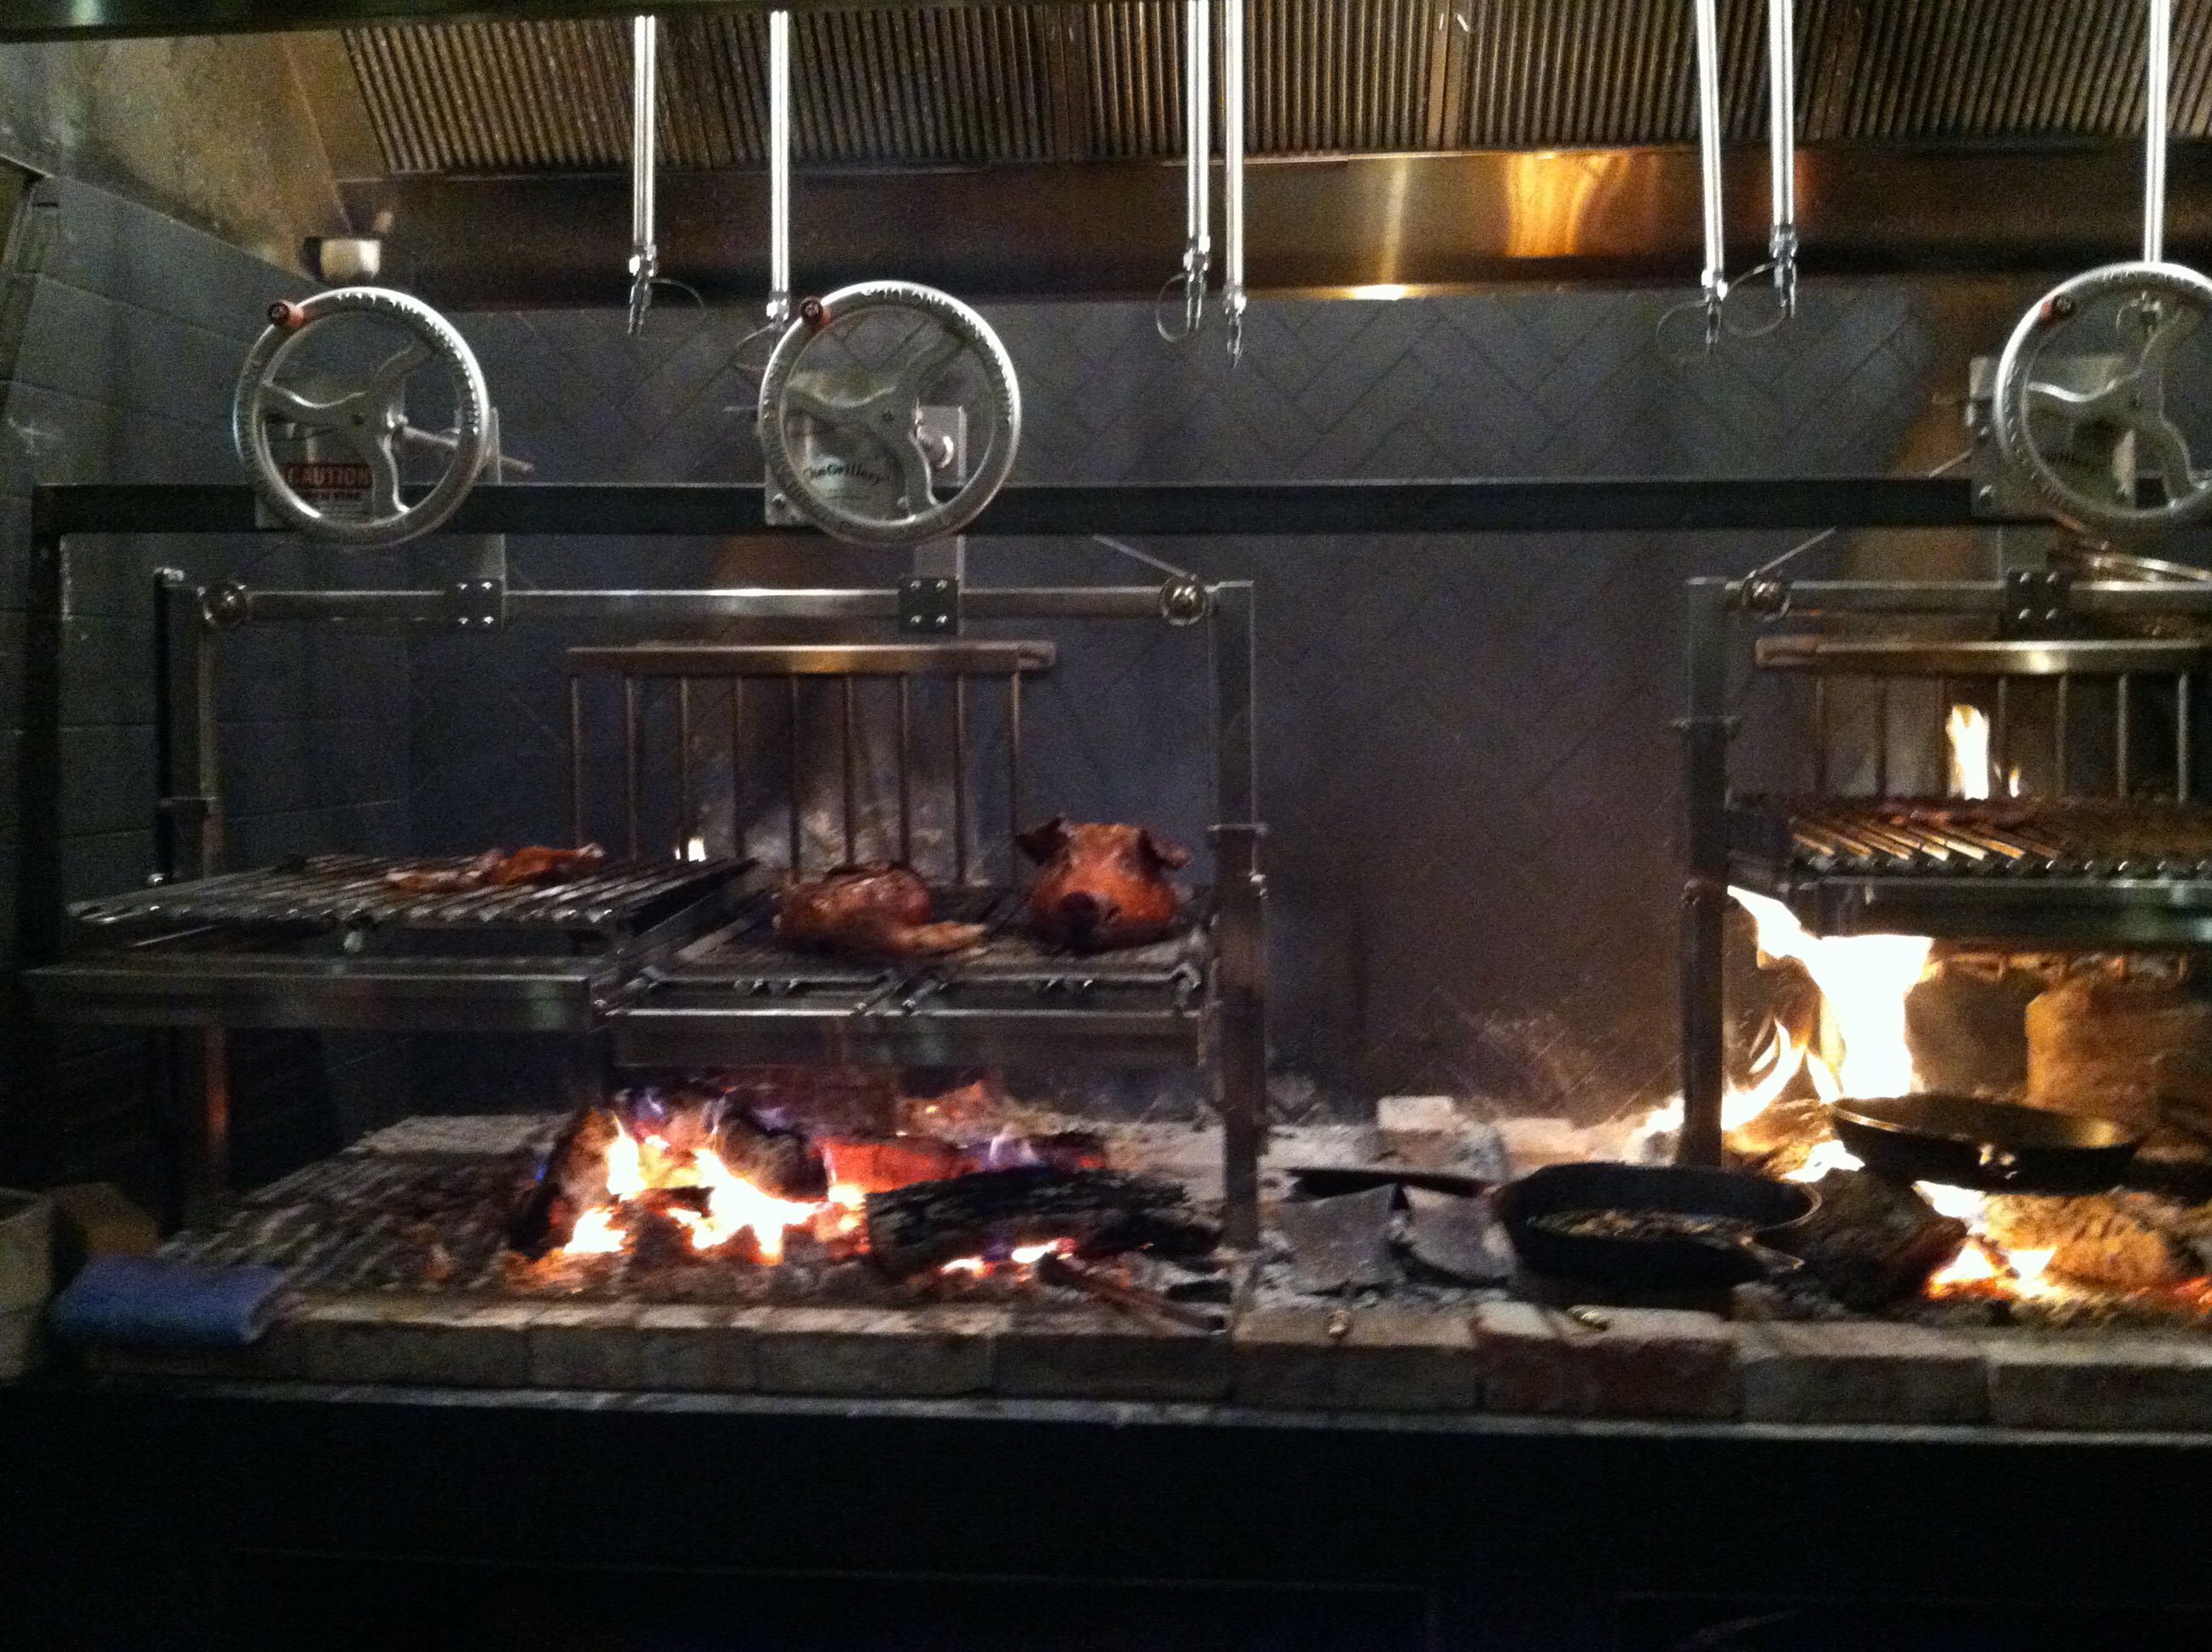 Tbd San Francisco S New All Wood Fired Restaurant